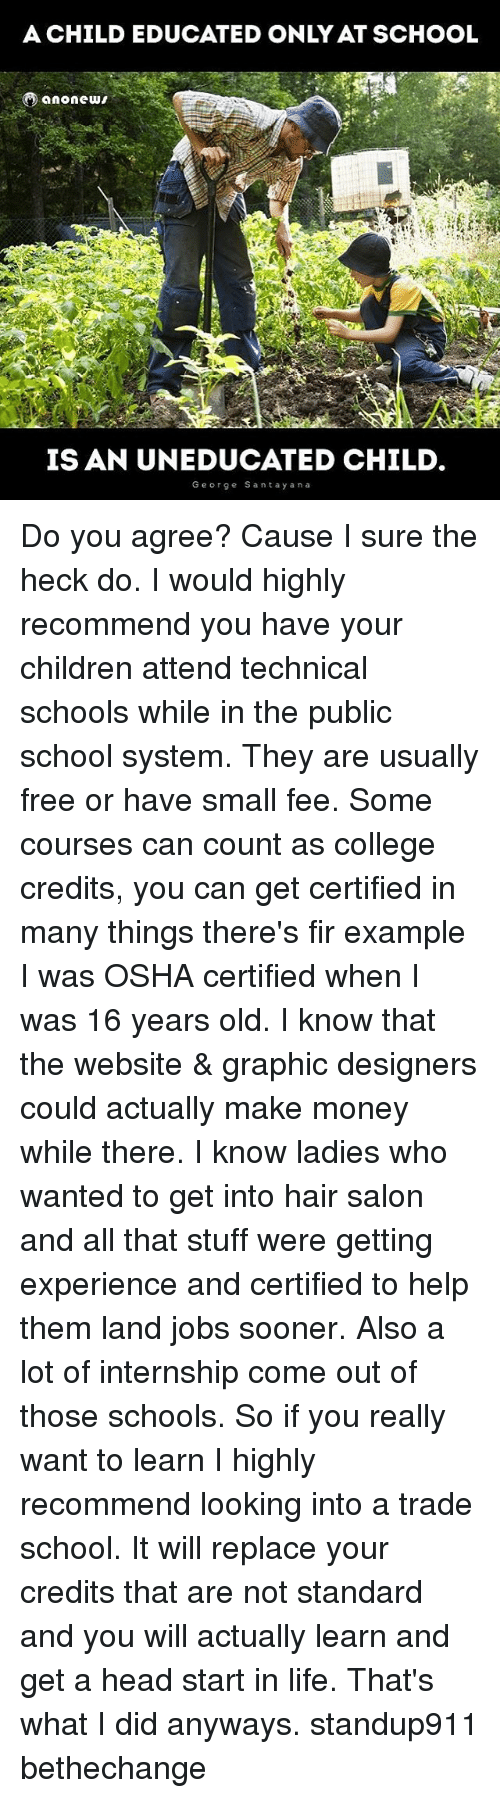 osha: A CHILD EDUCATED ONLY AT SCHOOL  A And  IS AN UNEDUCATED CHILD  George Santay ana Do you agree? Cause I sure the heck do. I would highly recommend you have your children attend technical schools while in the public school system. They are usually free or have small fee. Some courses can count as college credits, you can get certified in many things there's fir example I was OSHA certified when I was 16 years old. I know that the website & graphic designers could actually make money while there. I know ladies who wanted to get into hair salon and all that stuff were getting experience and certified to help them land jobs sooner. Also a lot of internship come out of those schools. So if you really want to learn I highly recommend looking into a trade school. It will replace your credits that are not standard and you will actually learn and get a head start in life. That's what I did anyways. standup911 bethechange